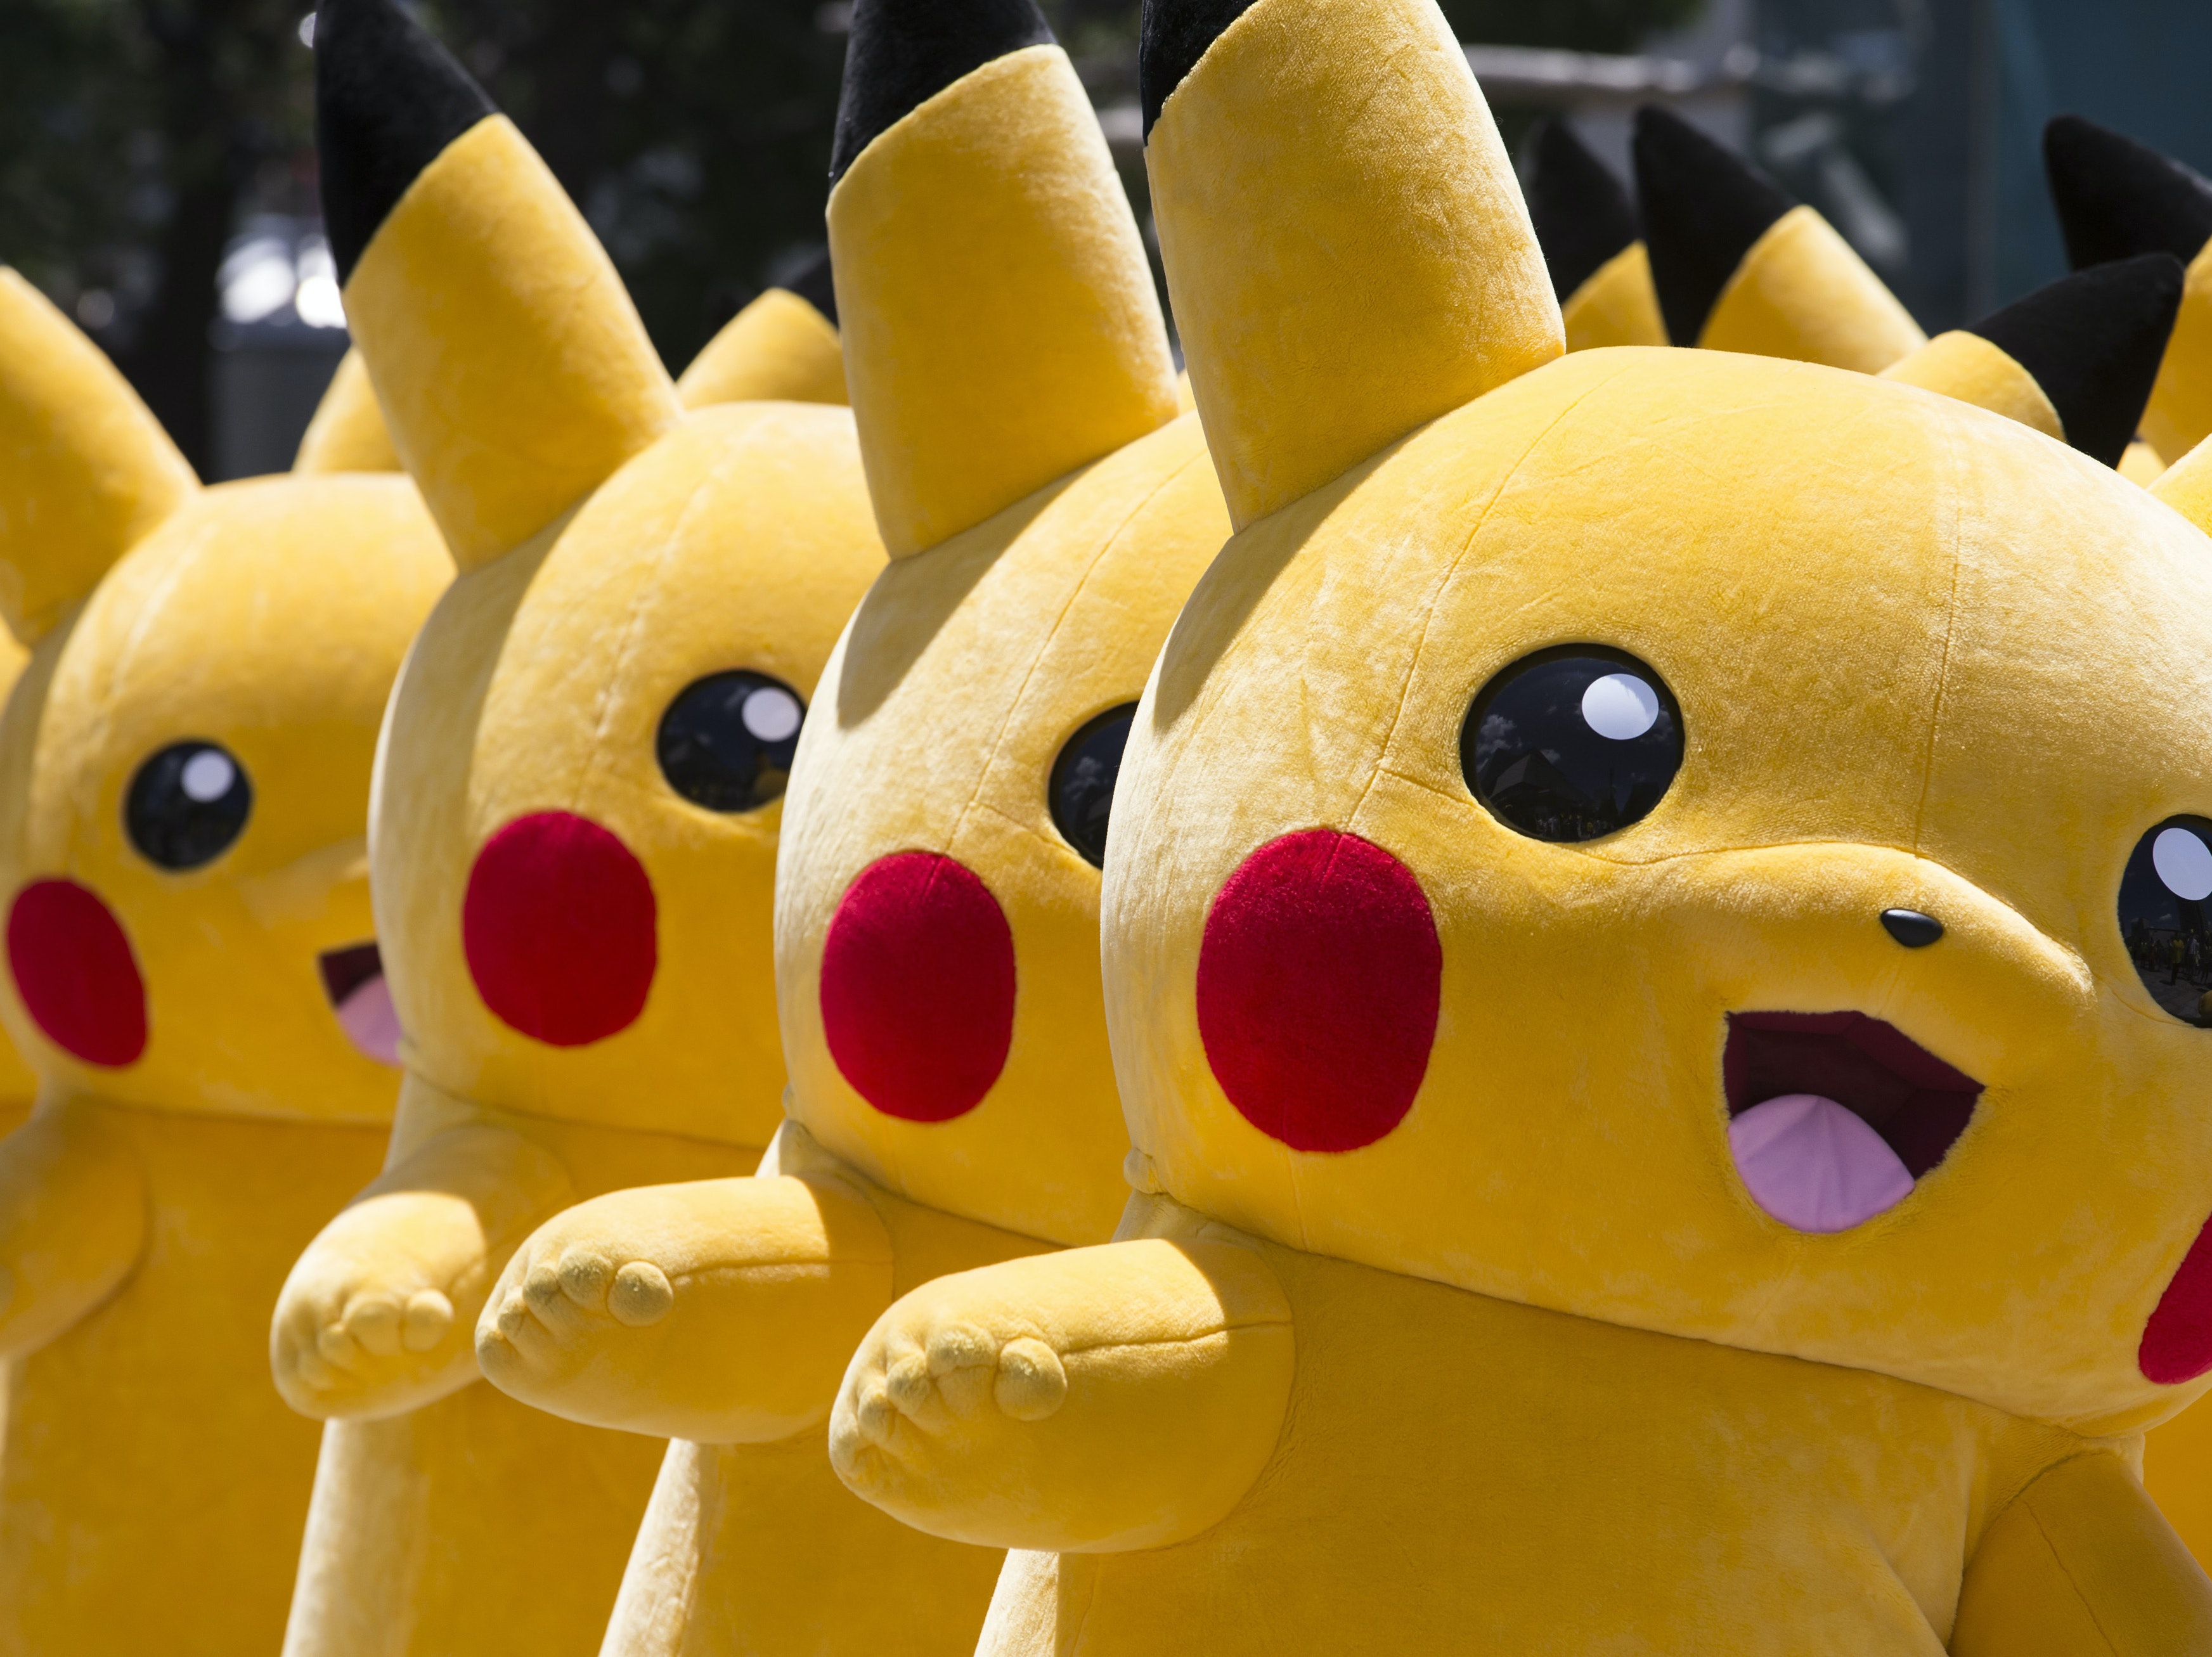 Performers dressed as Pikachu march during the Pikachu Outbreak event on August 7, 2016 in Yokohama, Japan.